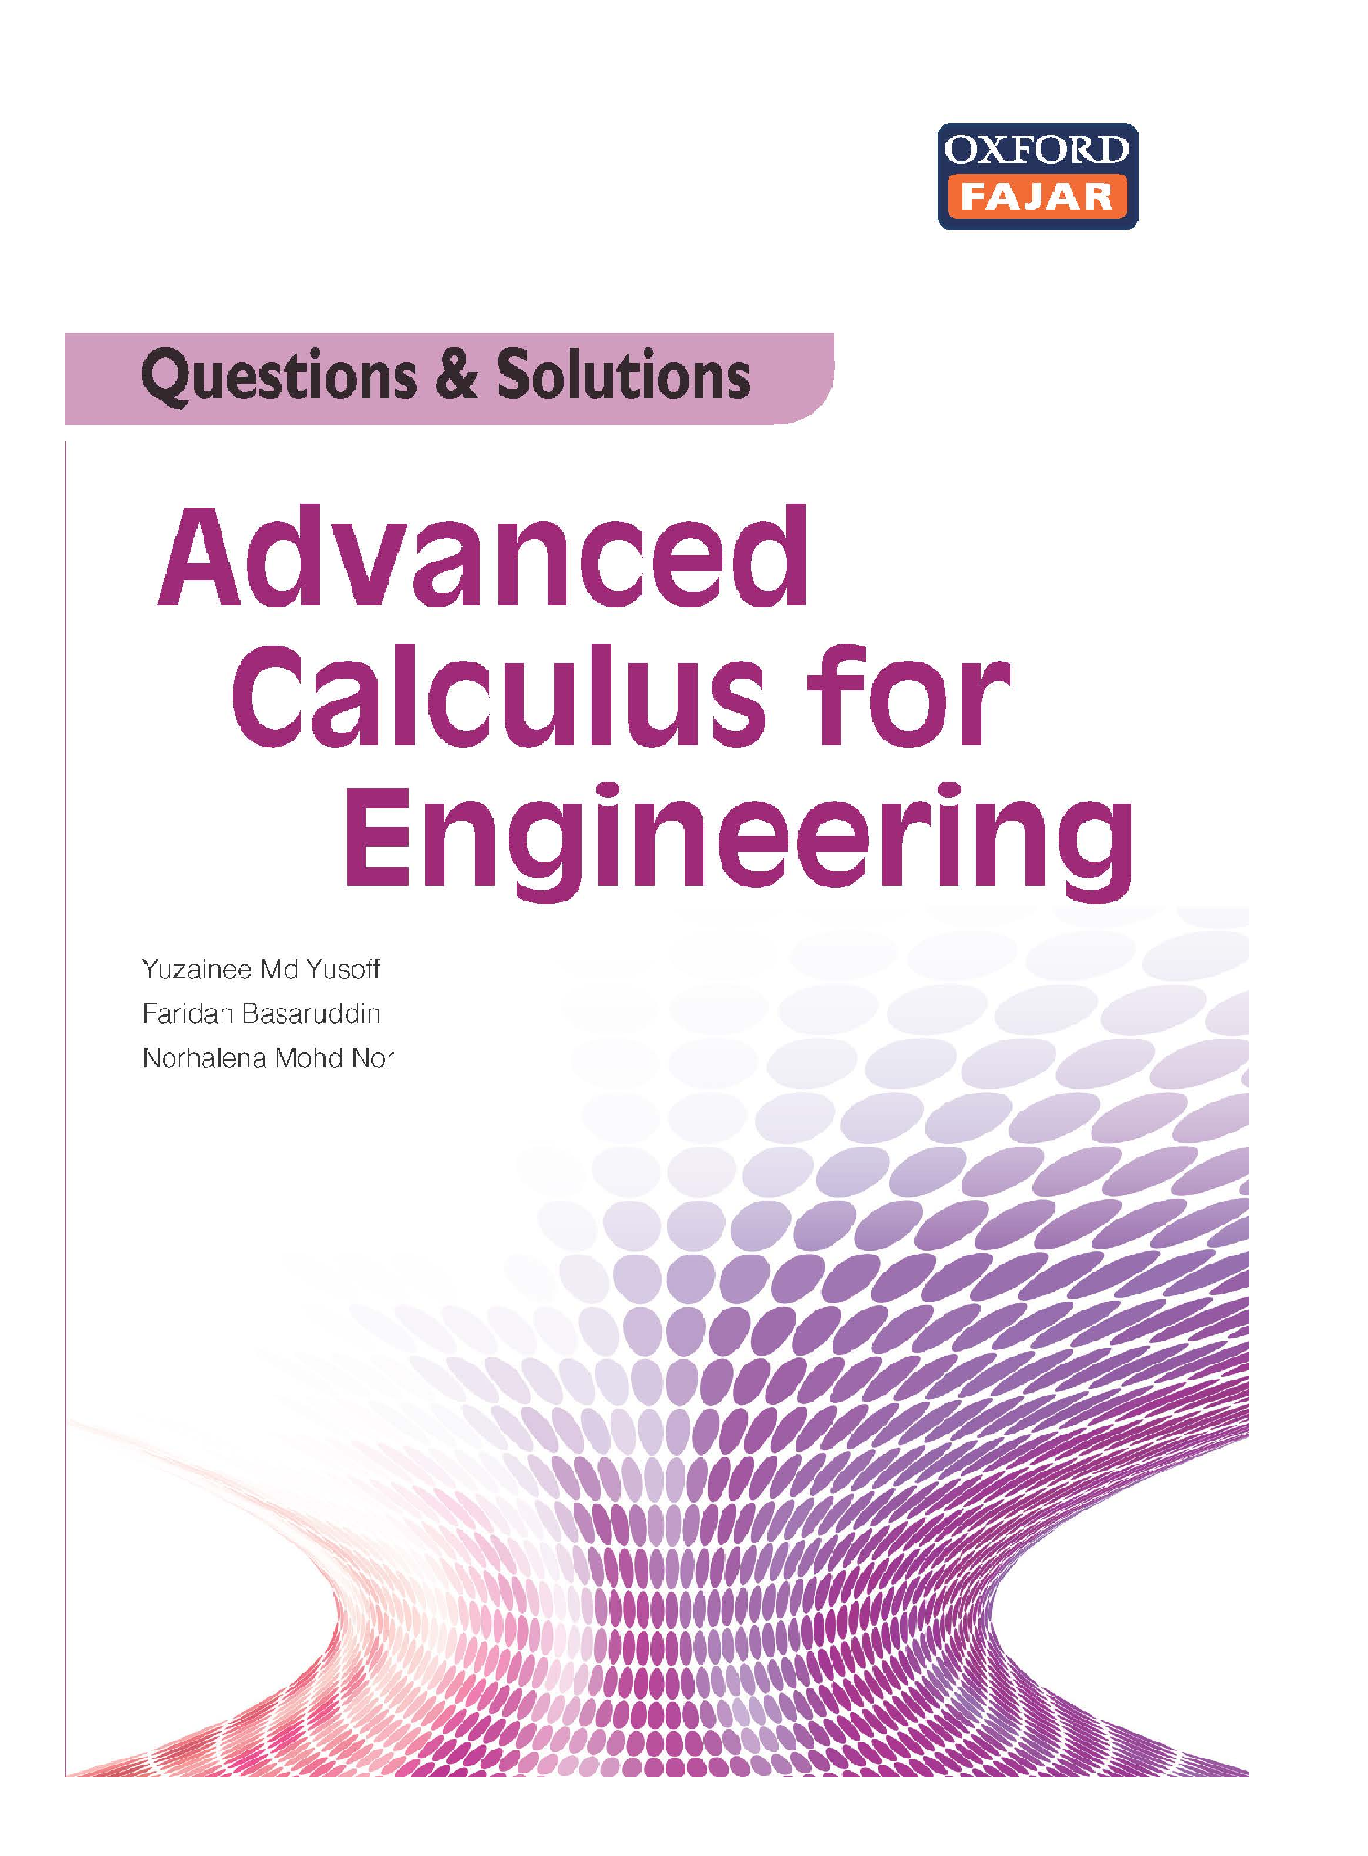 Questions & Solutions: Advanced Calculus for Engineering